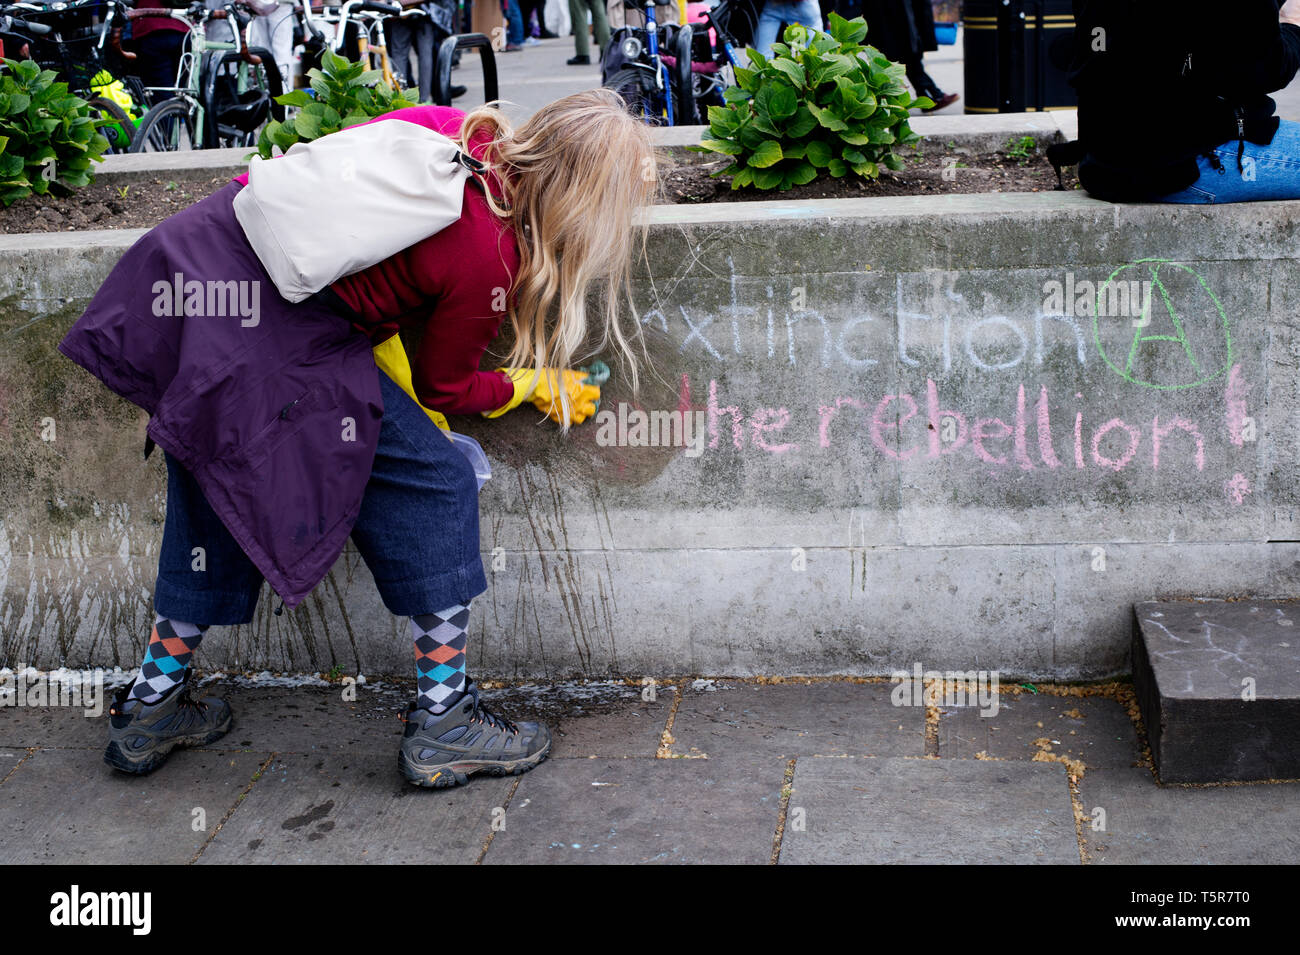 Extinction Rebellion protest, London . April 25th 2019. Marble Arch camp. A rebel cleans off the chalk writing that said 'Extension Rebellion'. - Stock Image